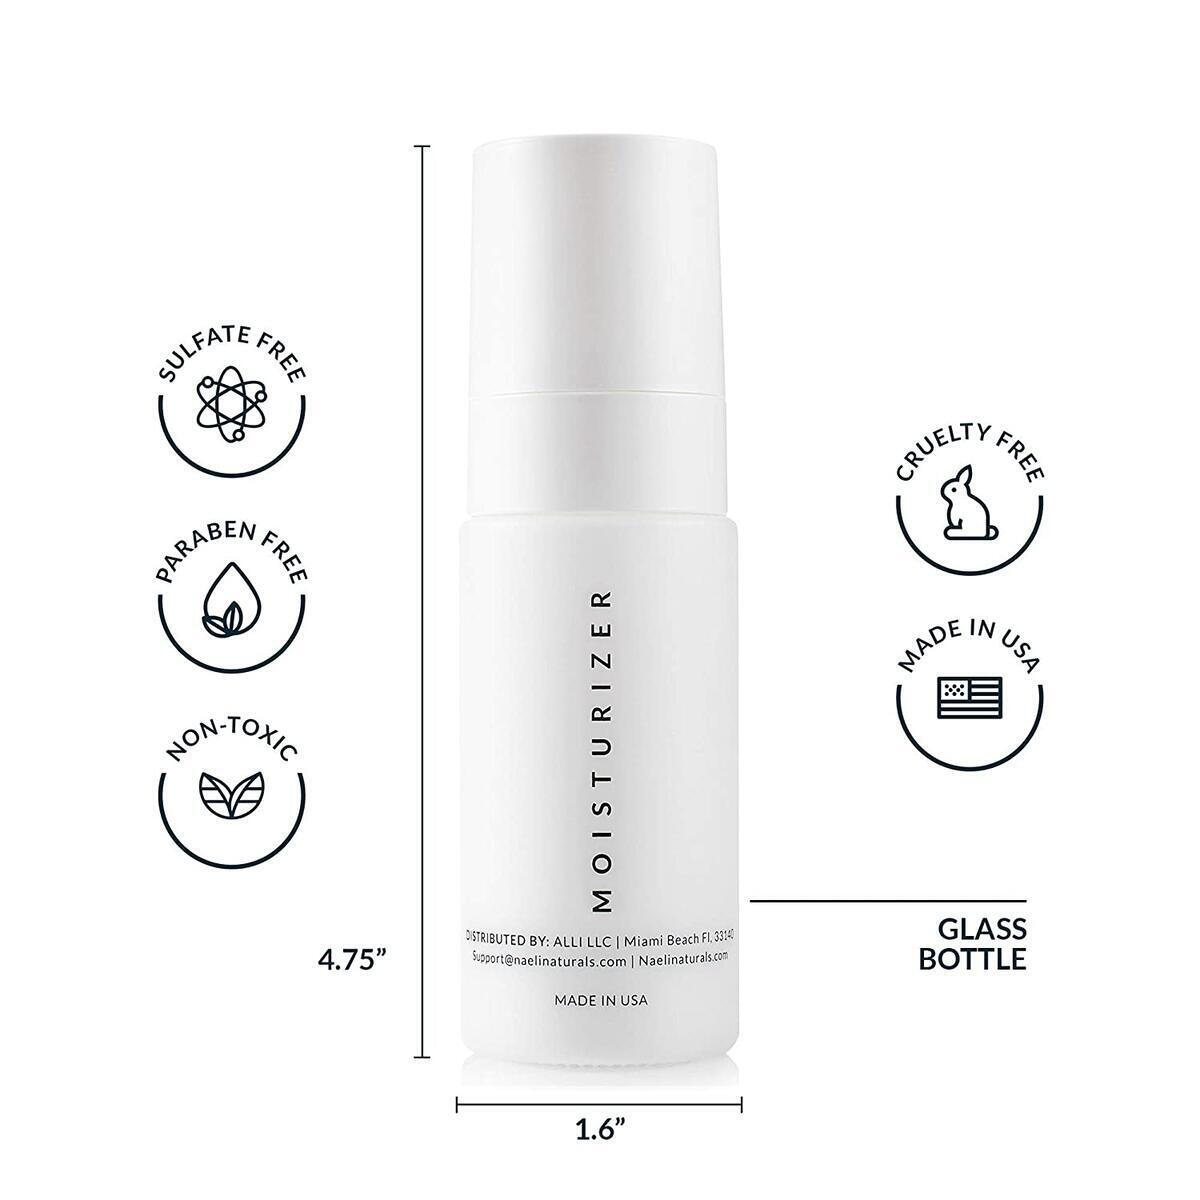 Face Moisturizer with SPF 30 - Anti Aging Collagen & Peptide Complex - Reduces Wrinkles & Plumps Skin - Lightweight Hydration with Oat Protein & Hyaluronic Acid, 1.4 oz…